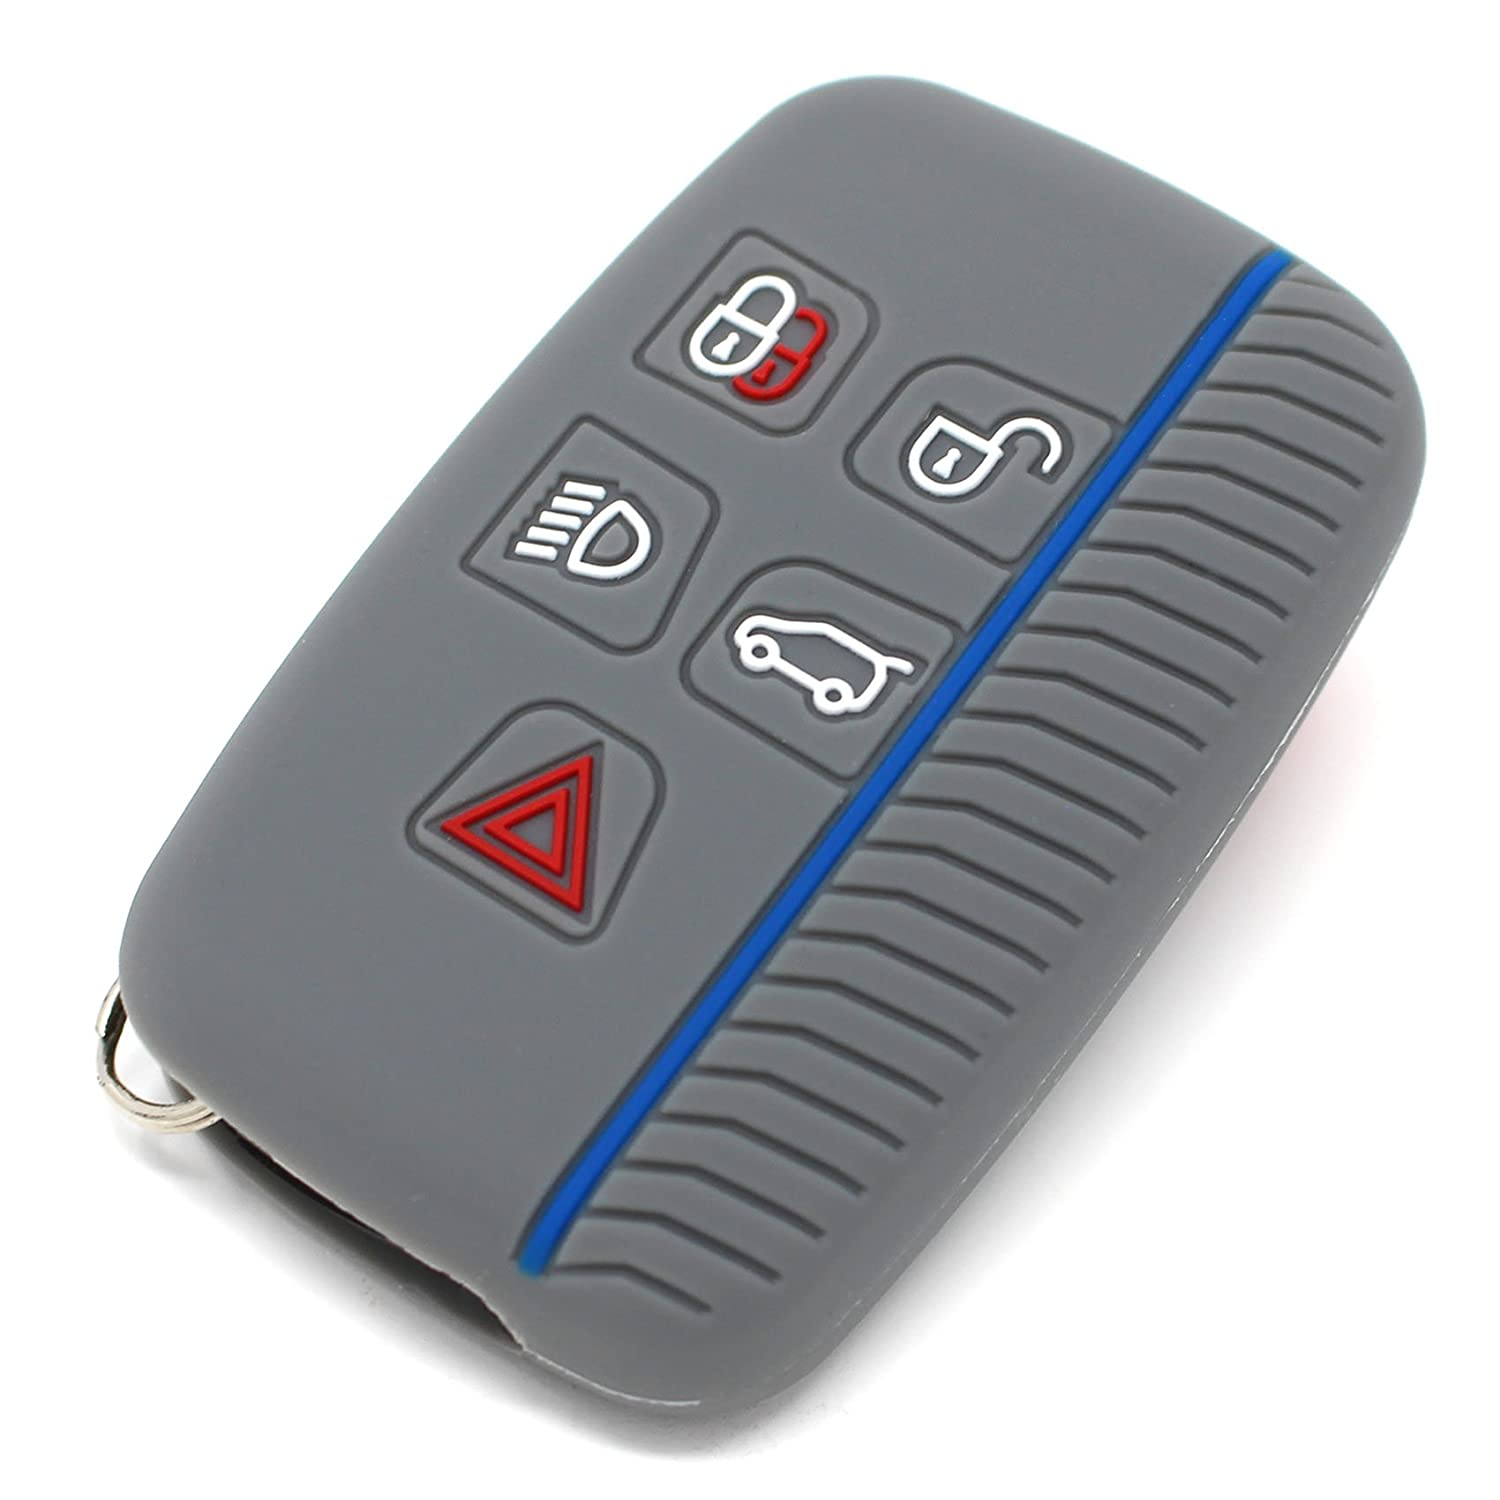 Finest-Folia LB silicone key cover for 5-button car keys